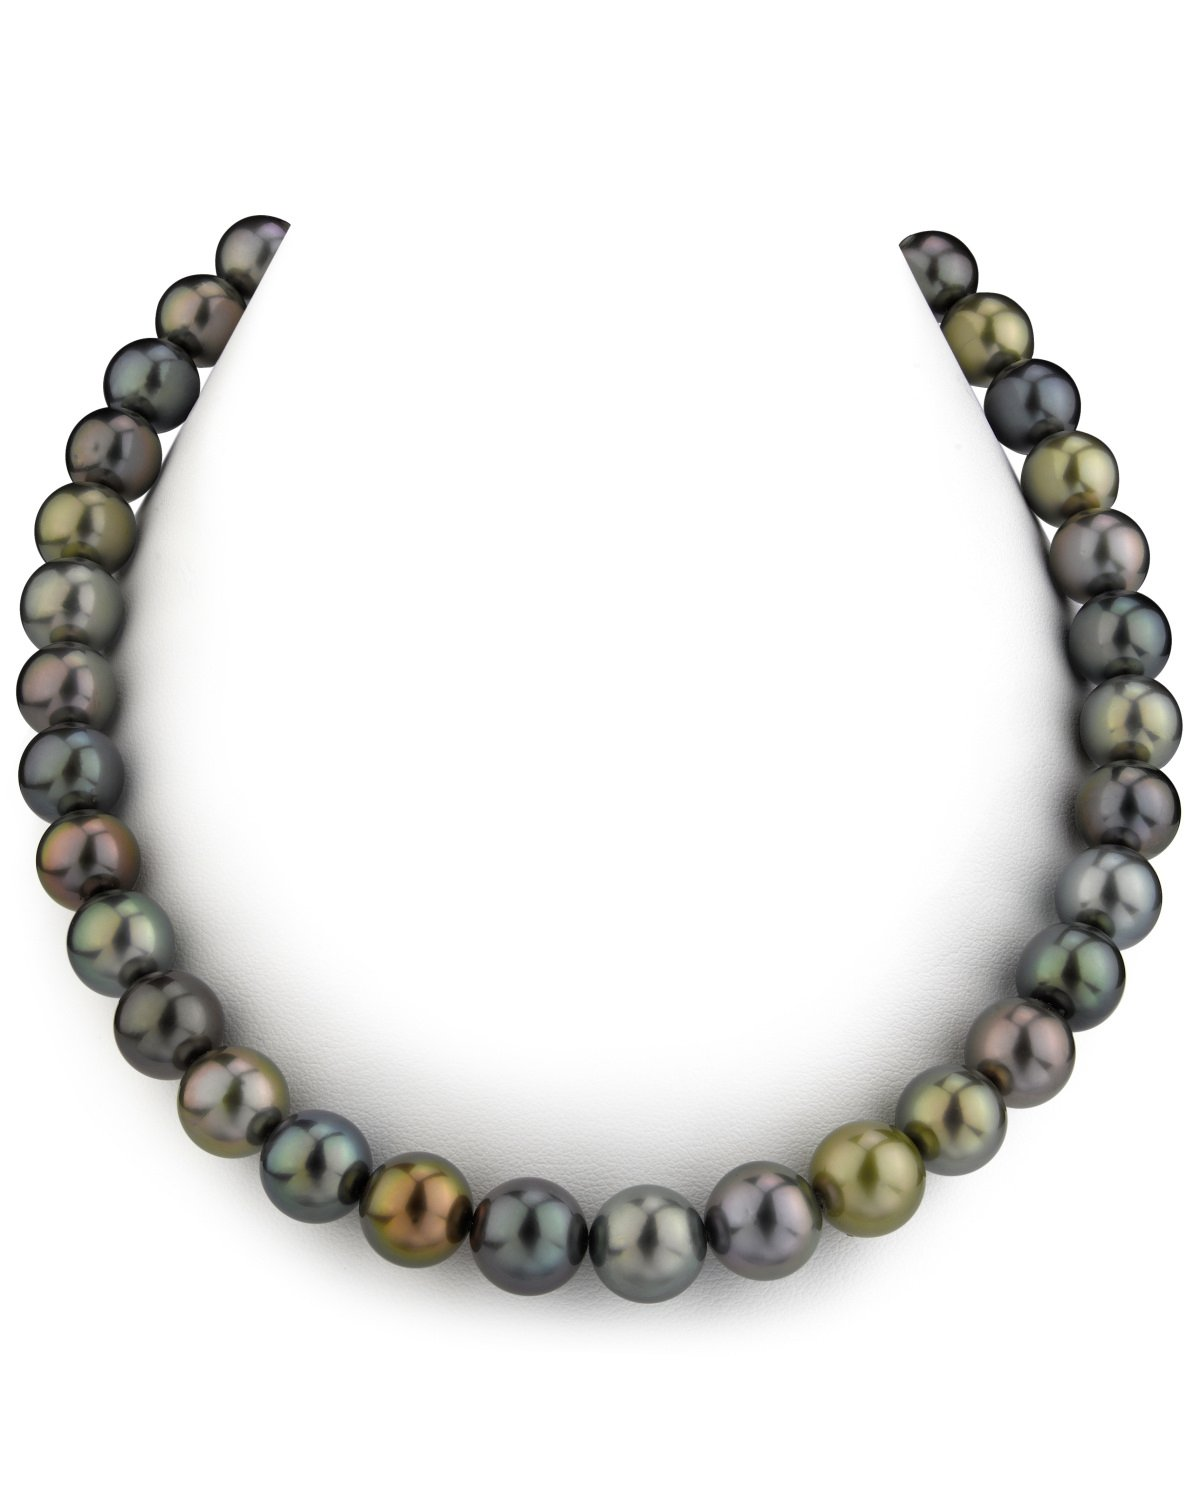 10-11mm Tahitian Multicolor Pearl Necklace - AAAA Quality